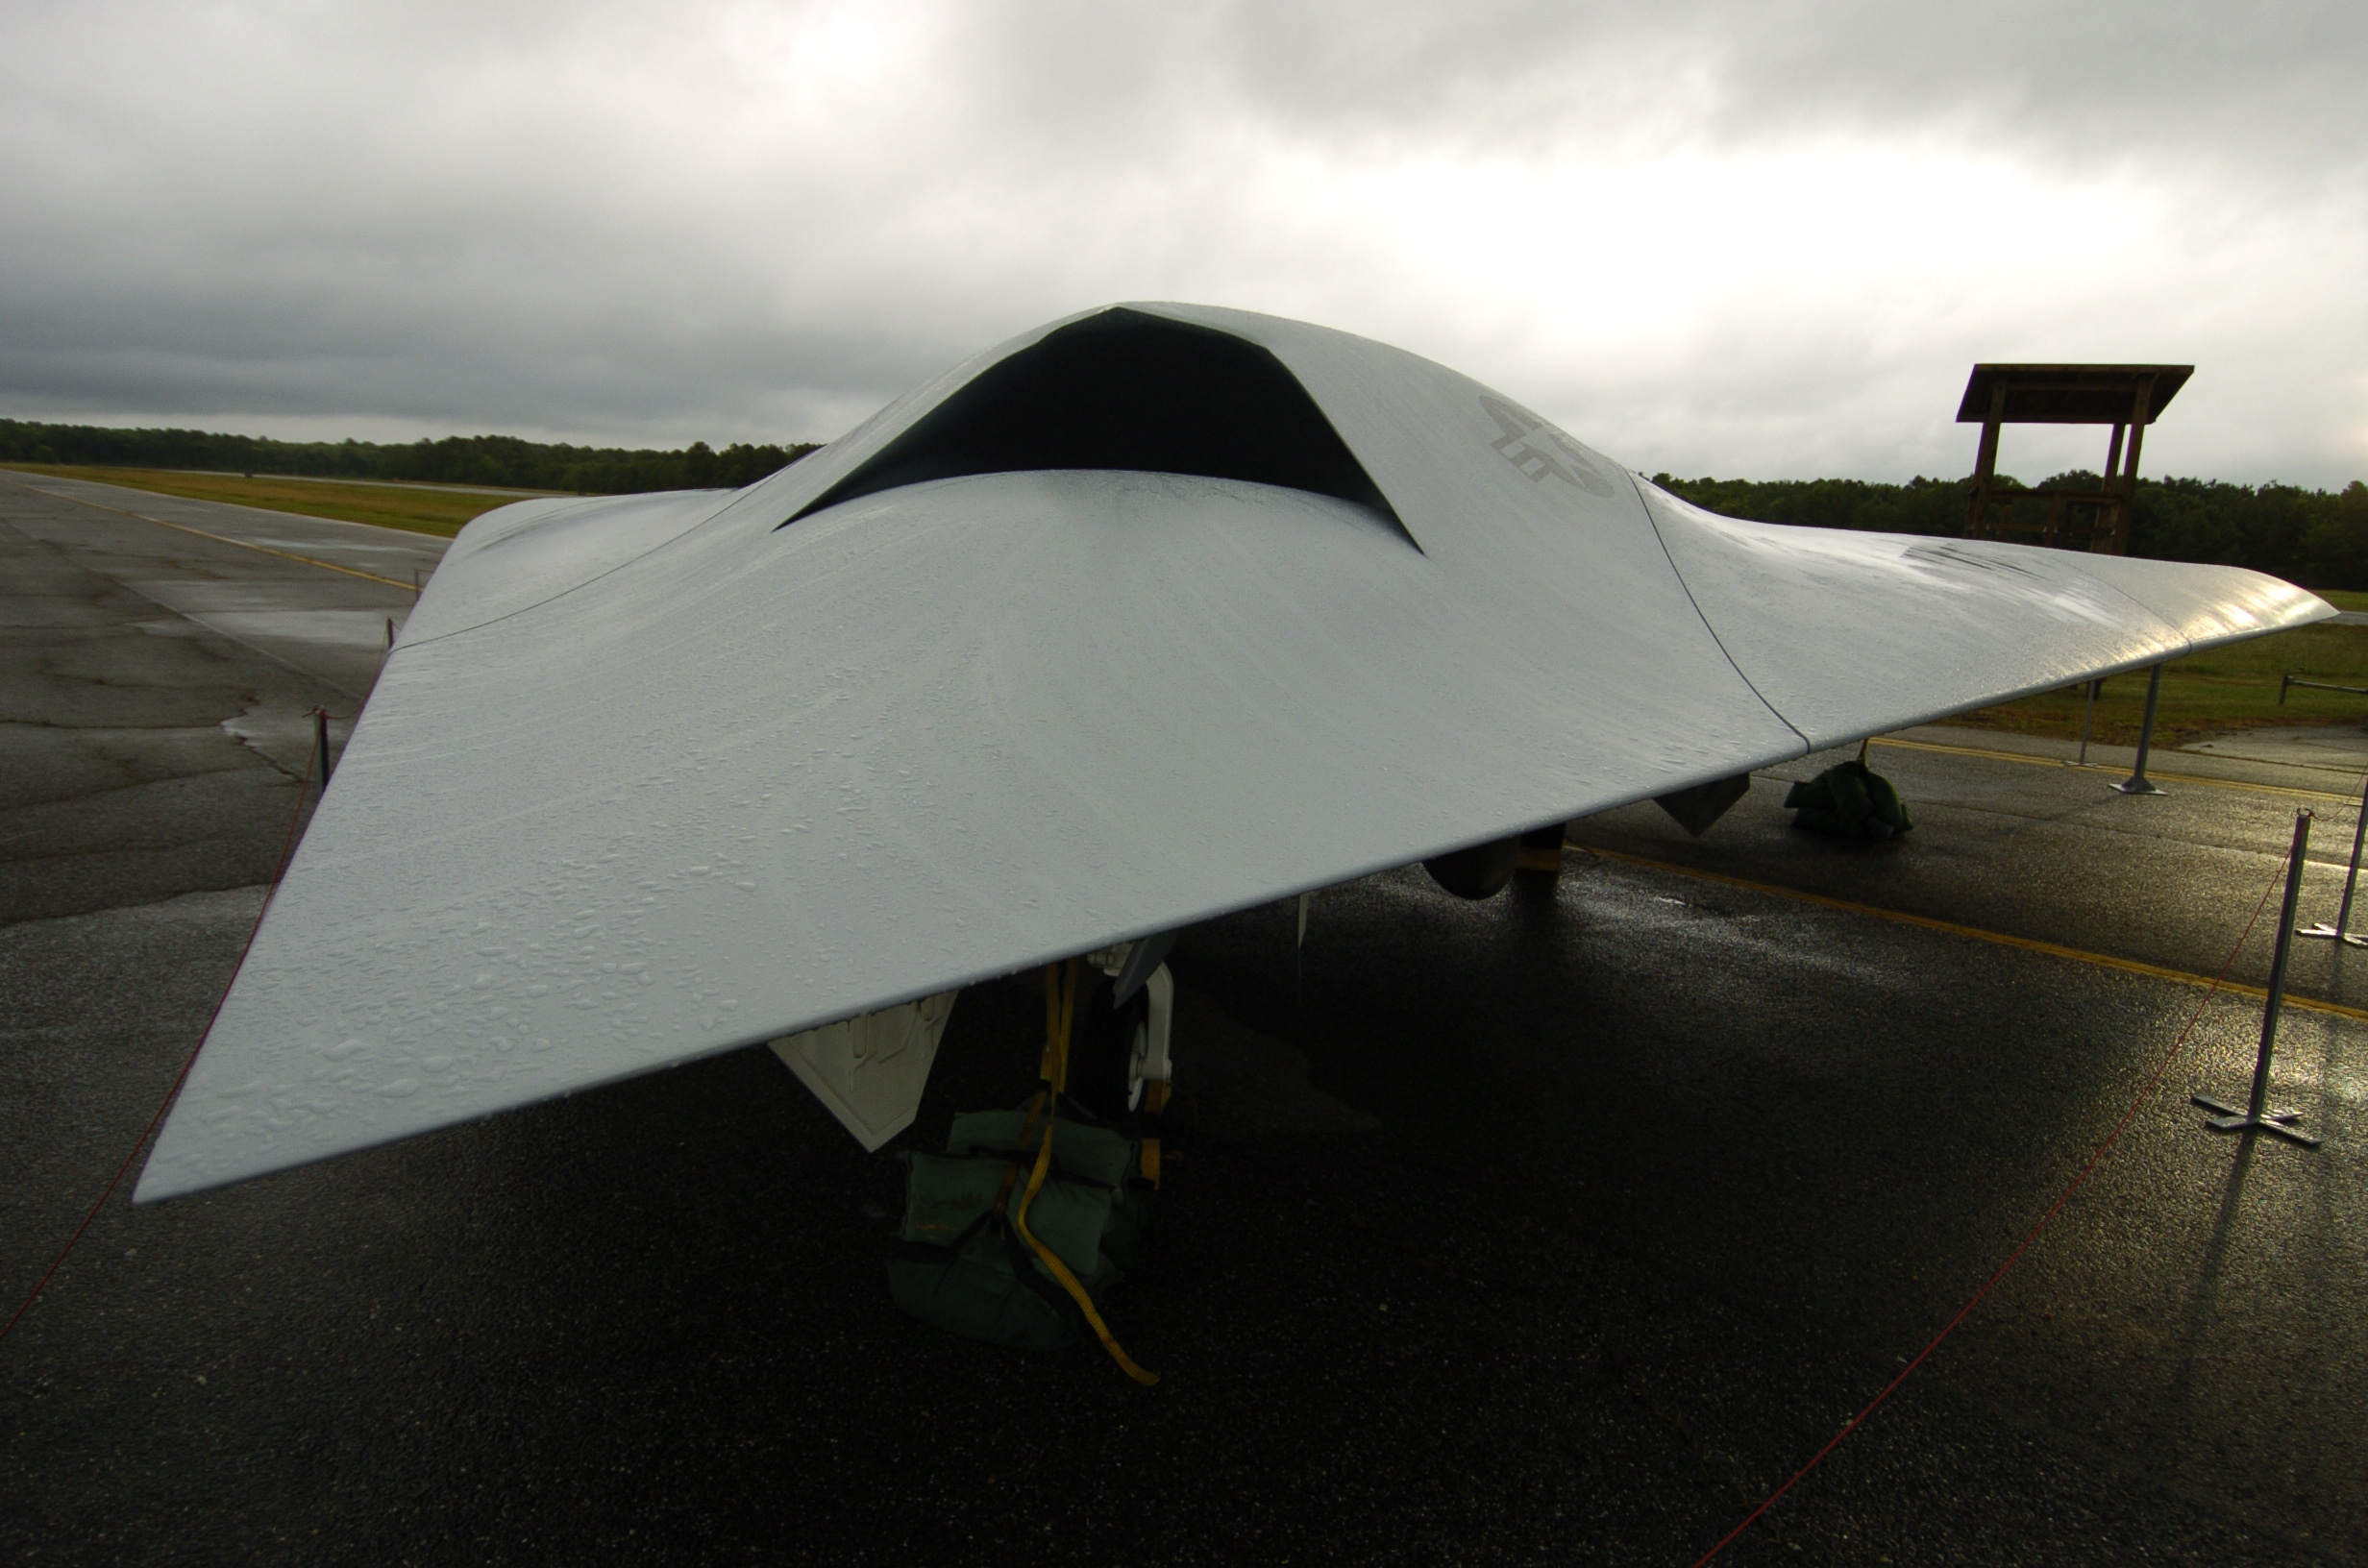 unmanned combat aerial vehicle wikipedia